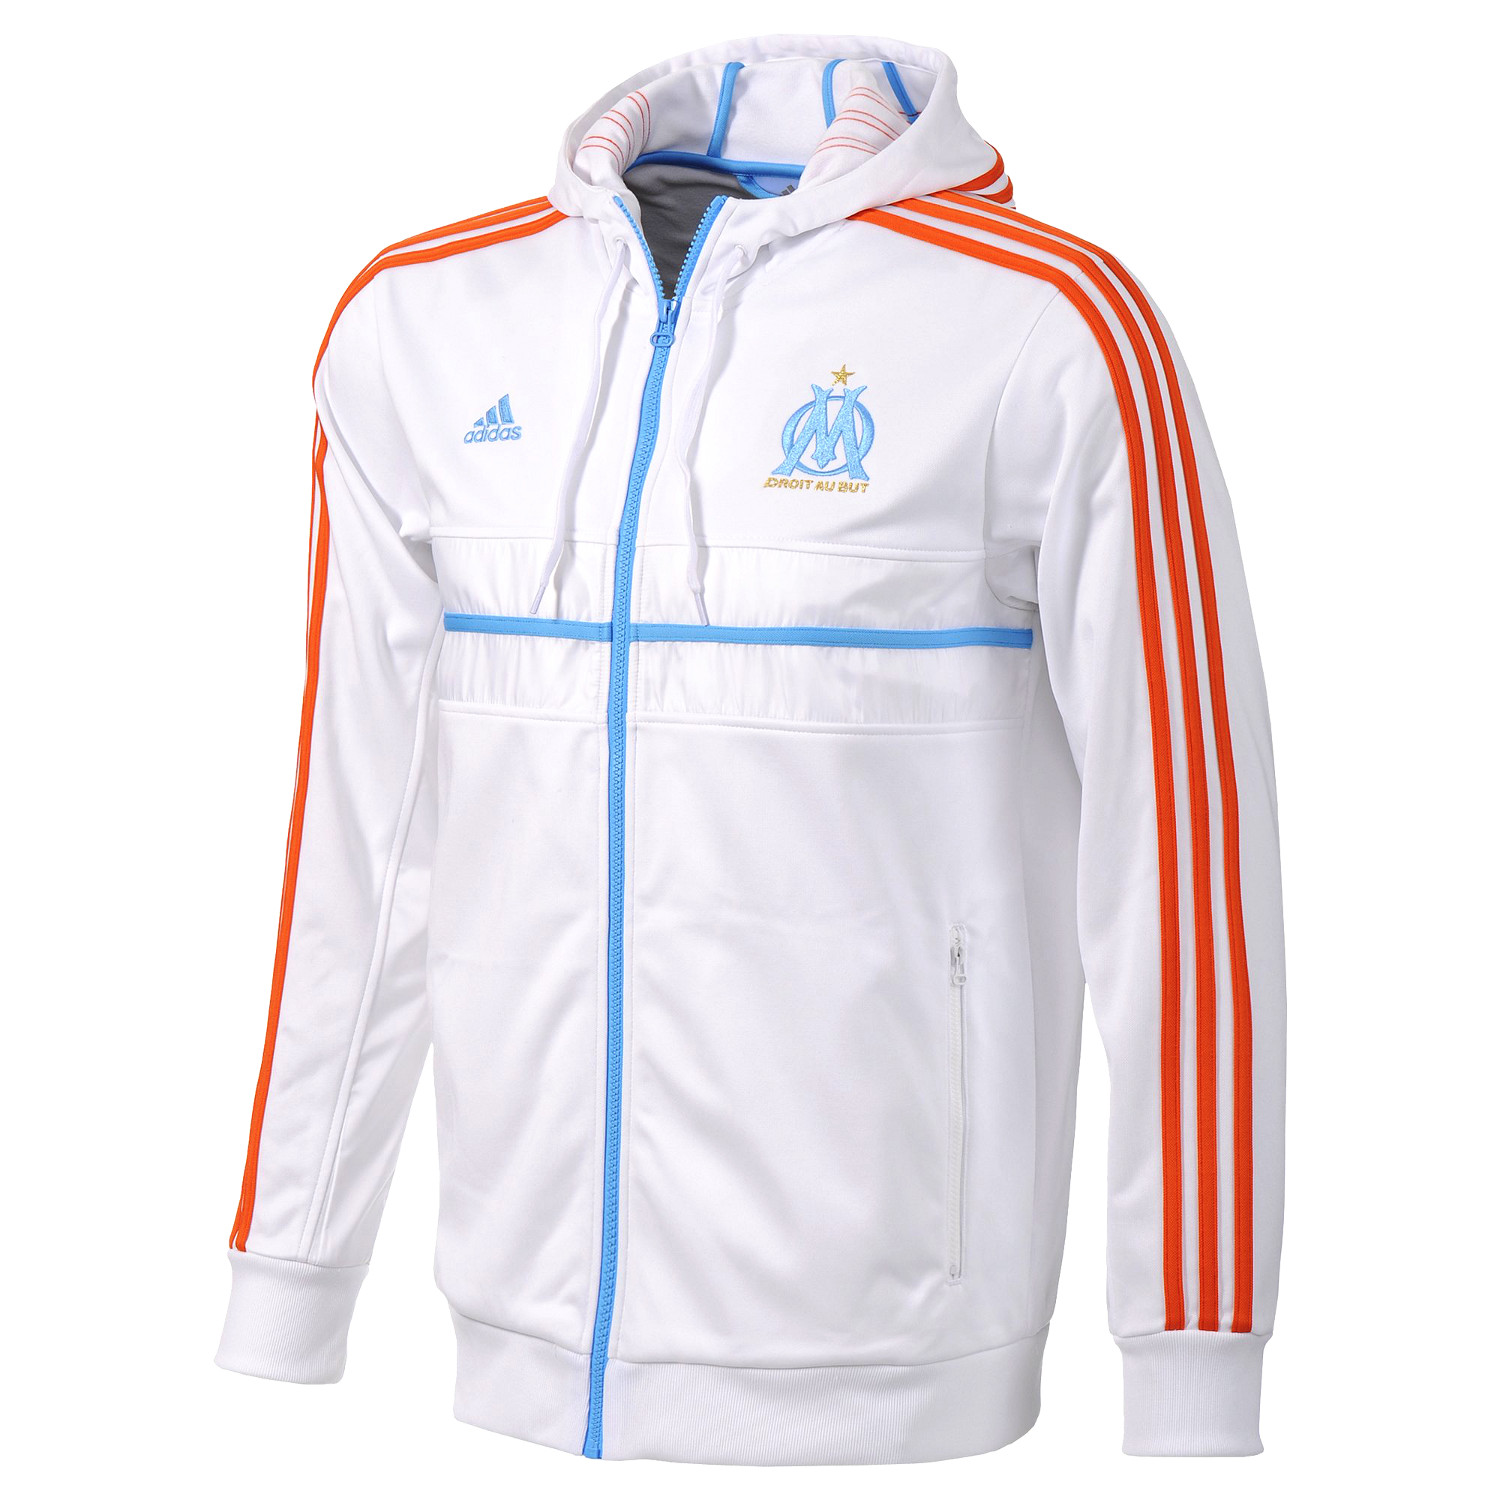 adidas olympique marseille anthem sport jacke sweatjacke kapuze pullover wei ebay. Black Bedroom Furniture Sets. Home Design Ideas